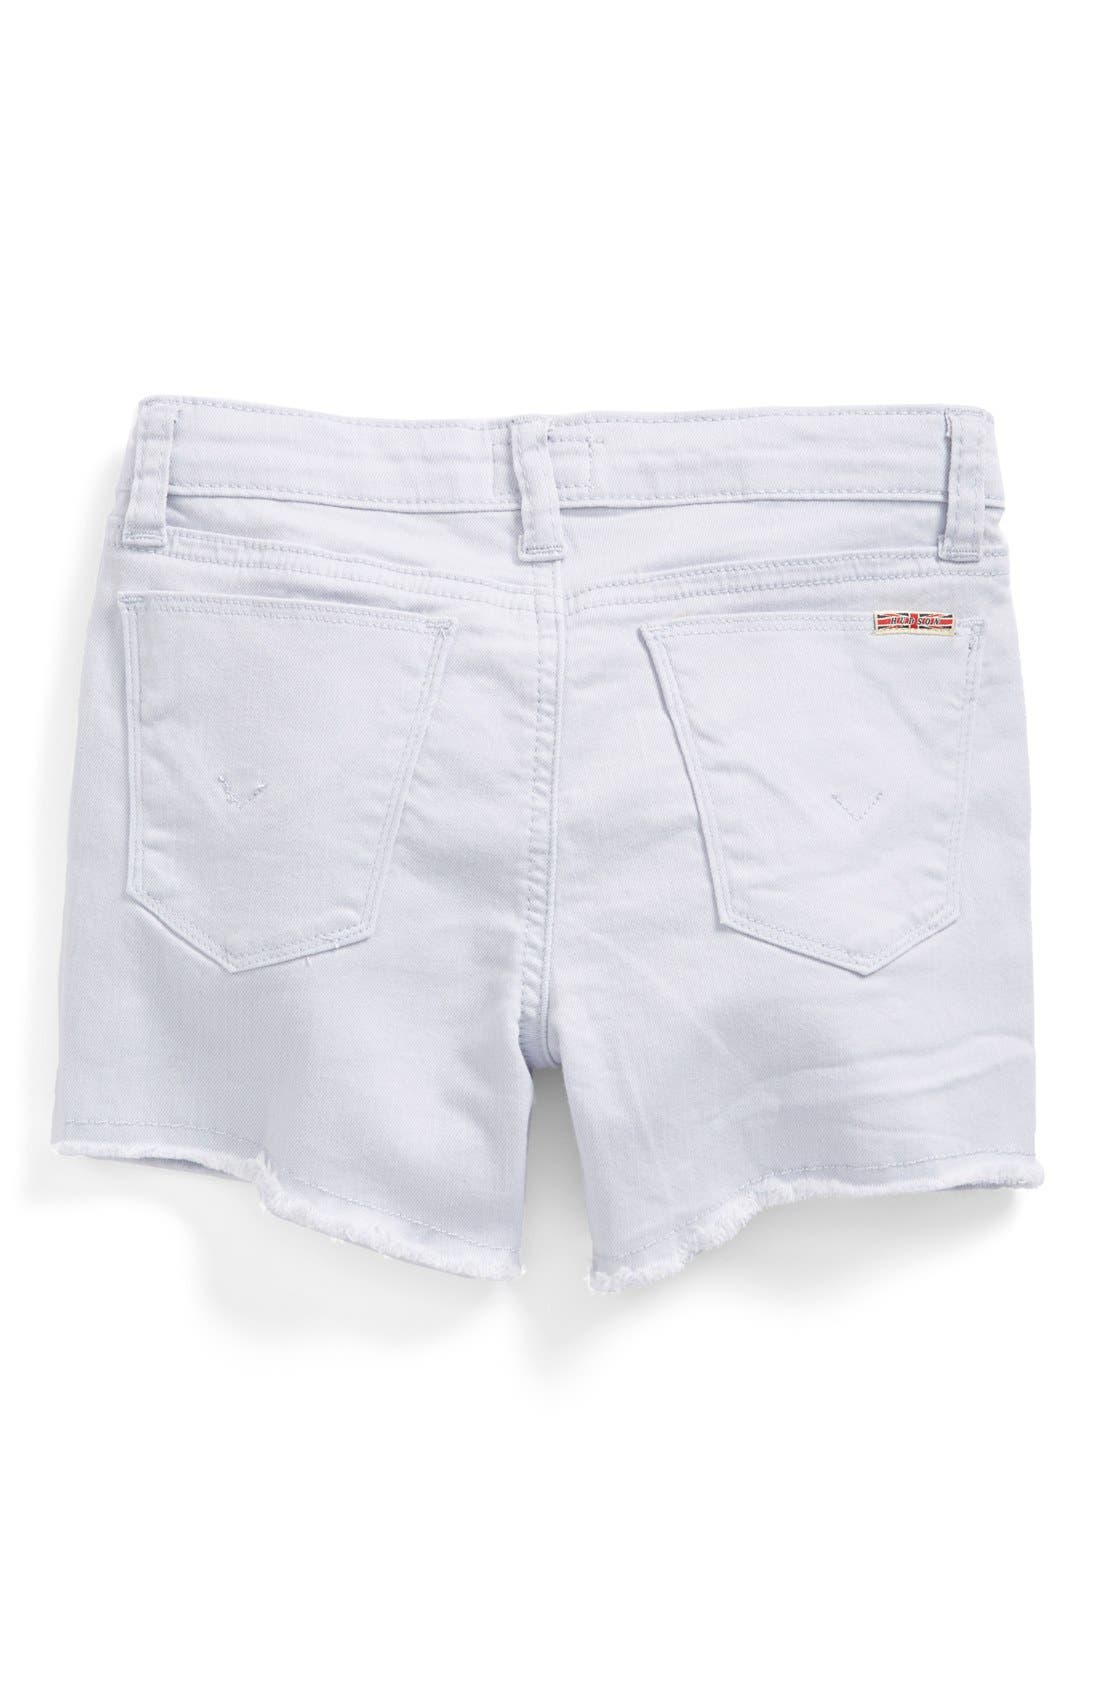 Alternate Image 1 Selected - Hudson Kids Raw Edge Jean Shorts (Big Girls)